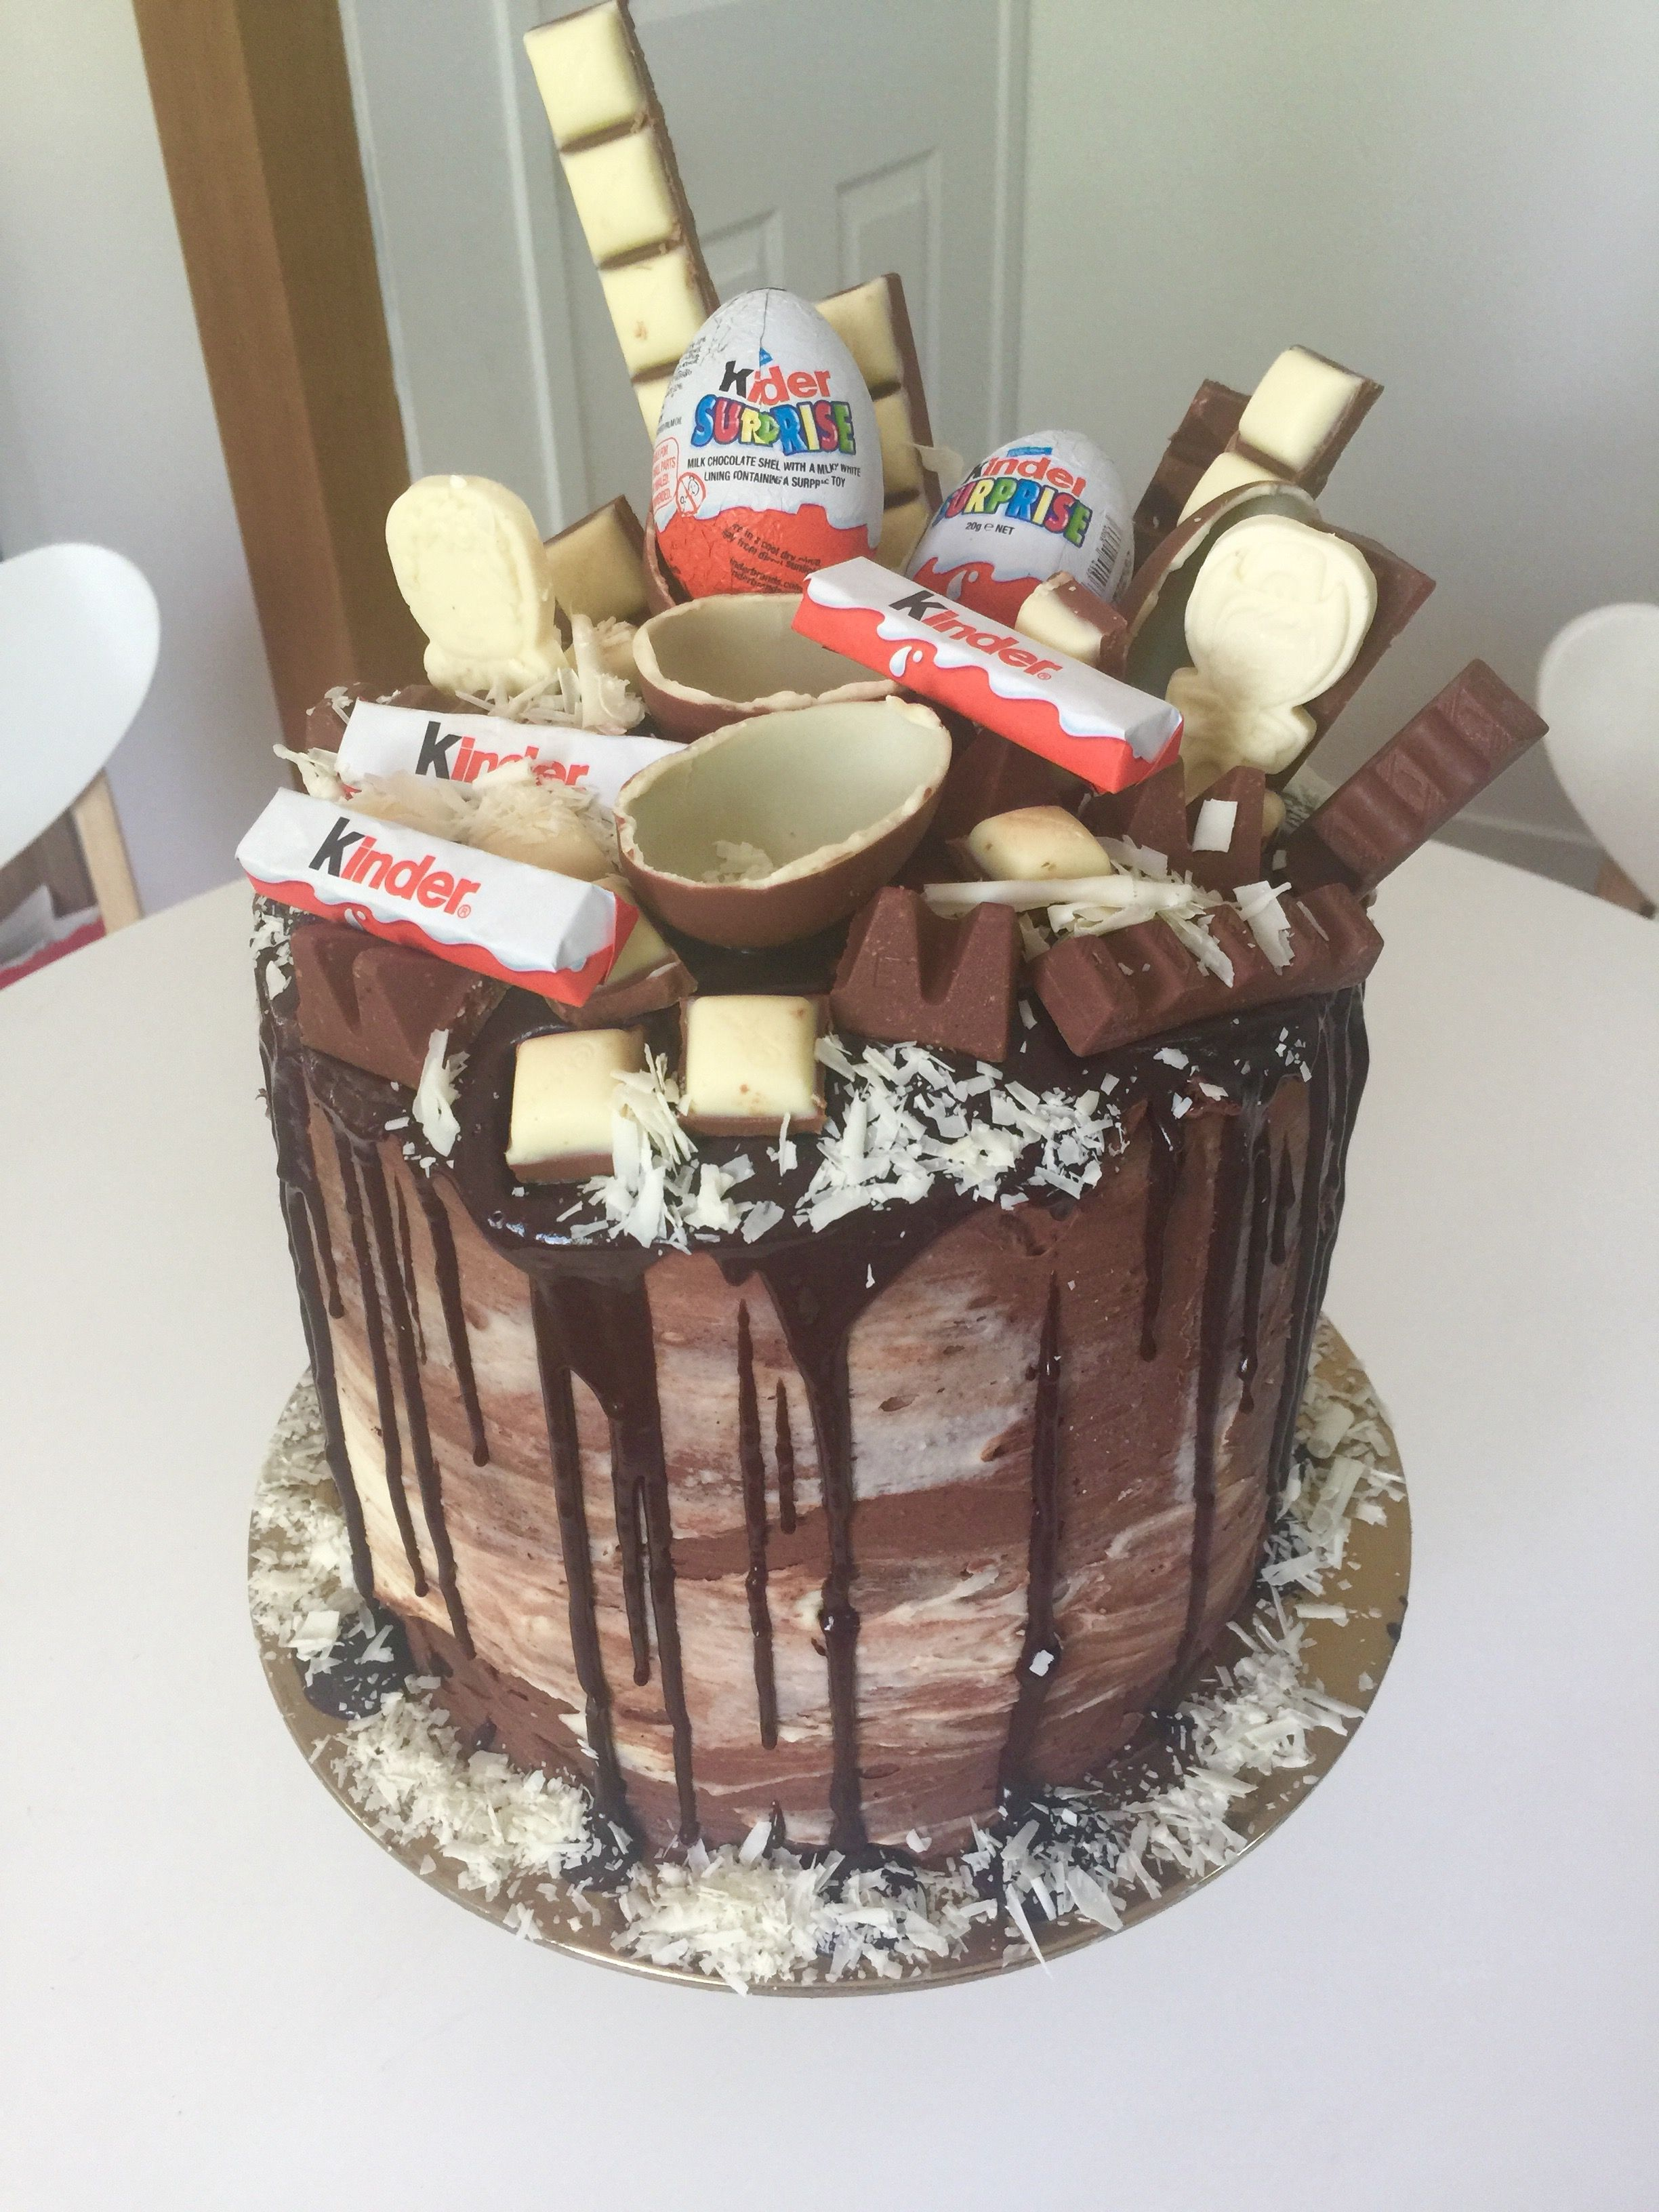 My Gluten Free Kinder Surprise Cake For My Son S 5th Birthday